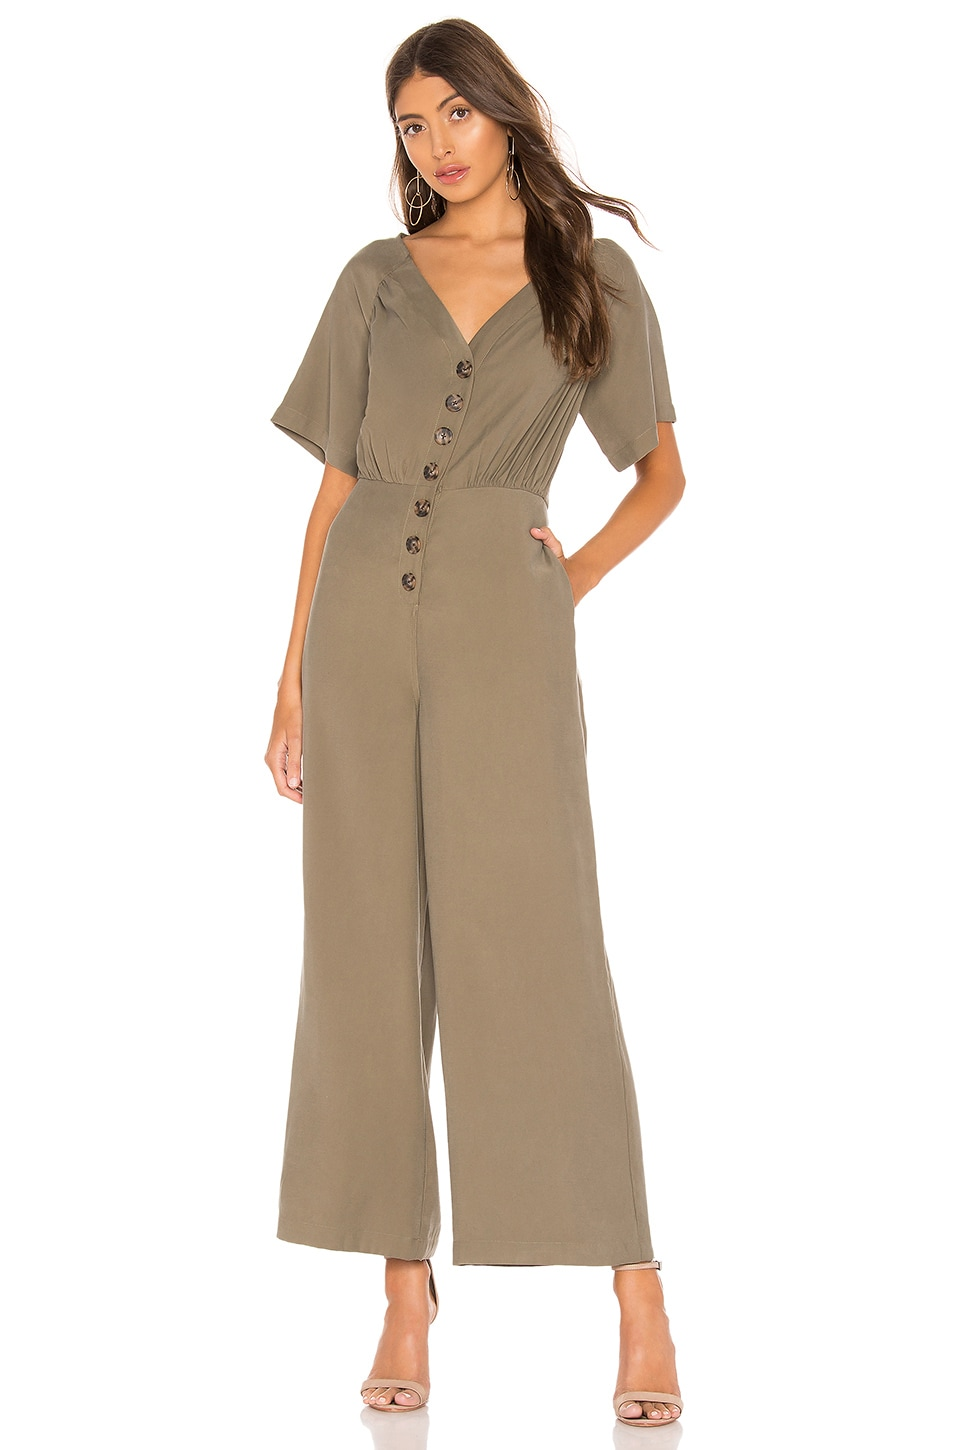 L'Academie The Lissa Jumpsuit in Olivine Green